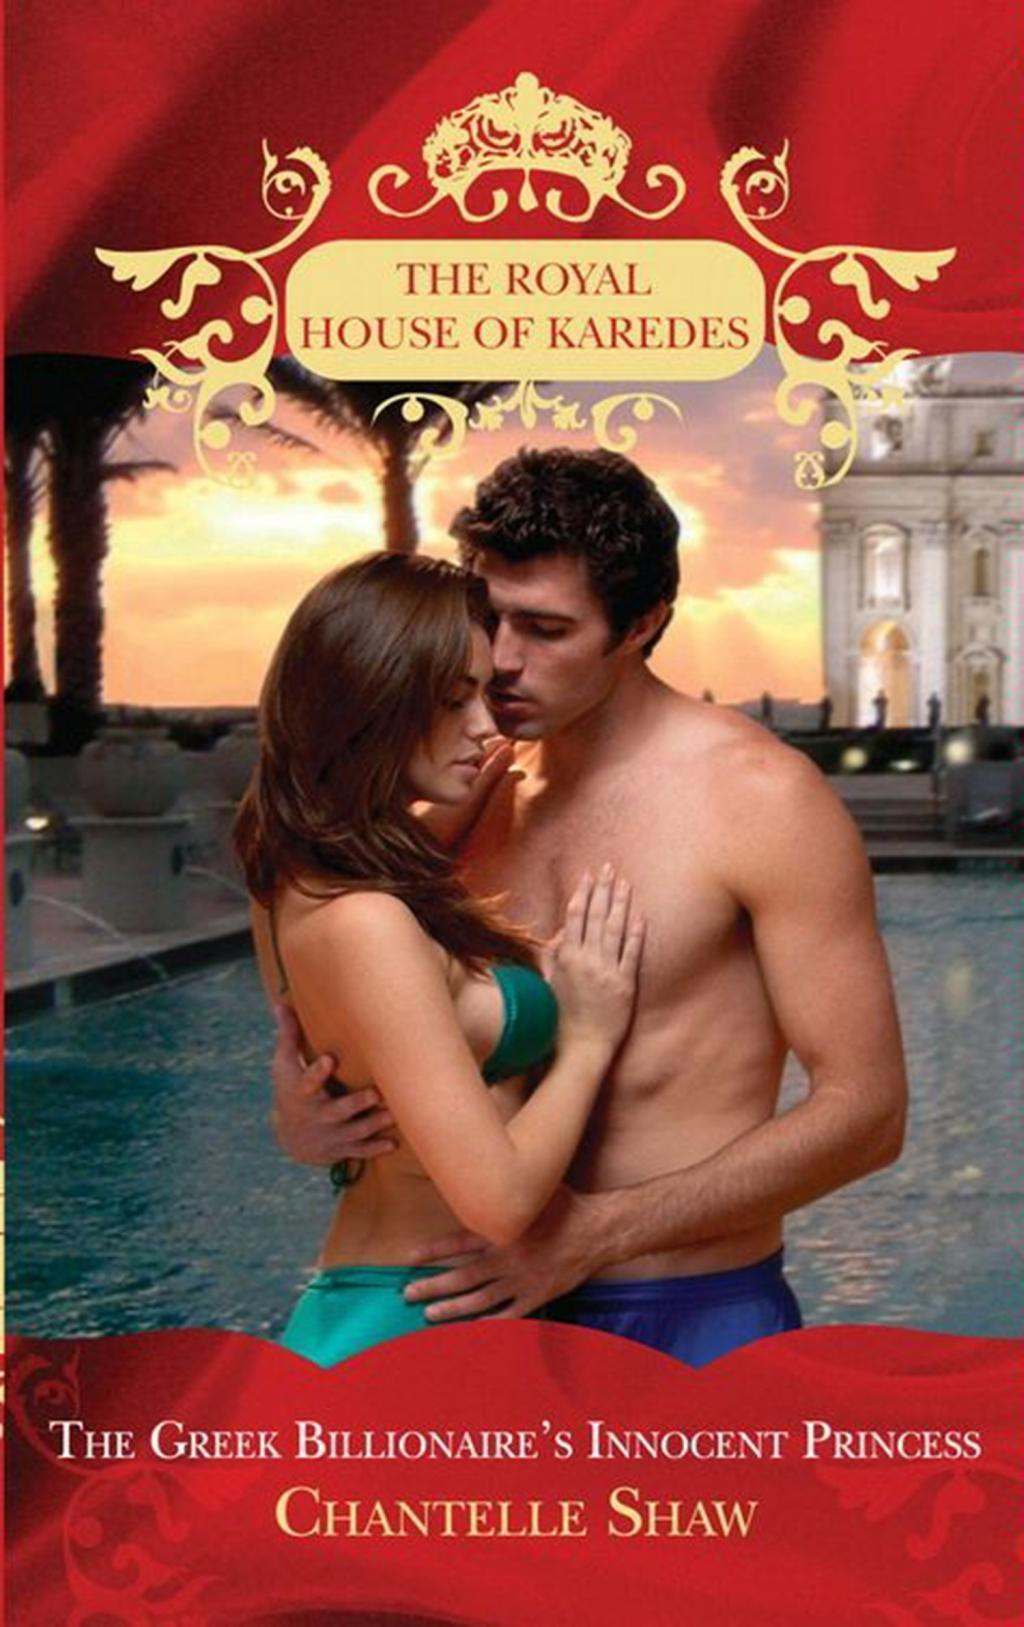 The Greek Billionaire's Innocent Princess (The Royal House of Karedes, Book 5)